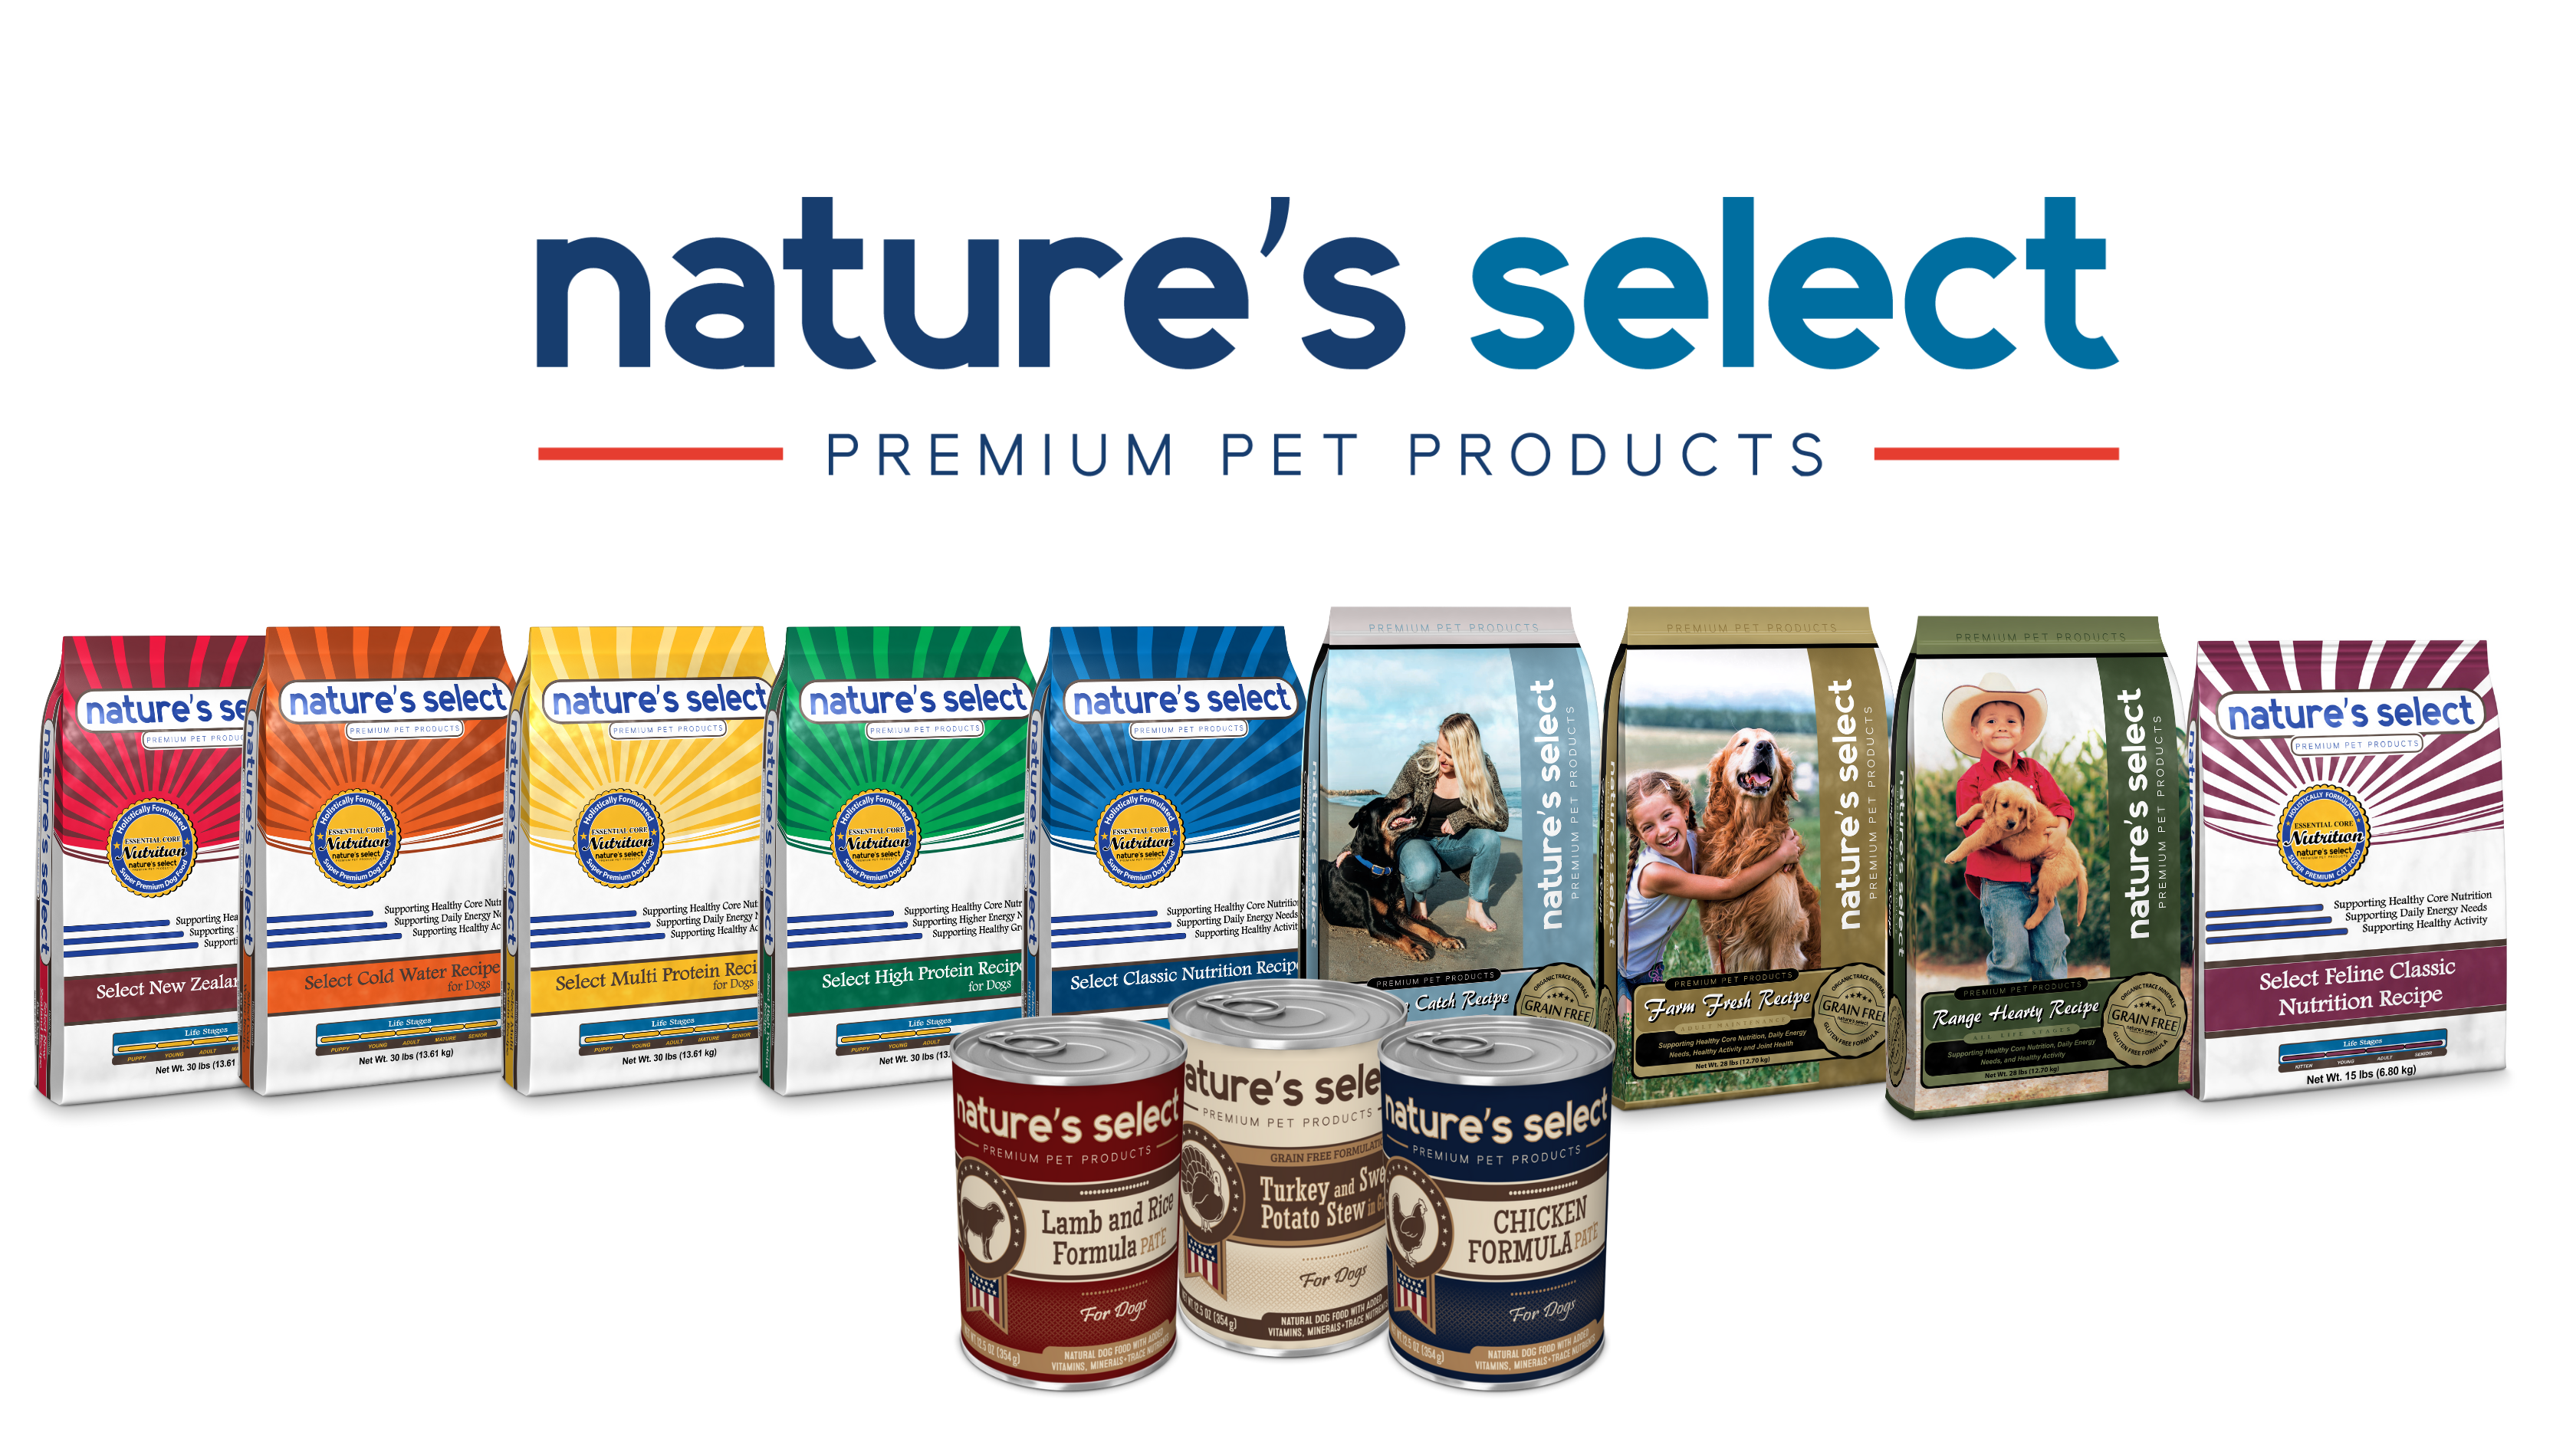 Nature's Select Products